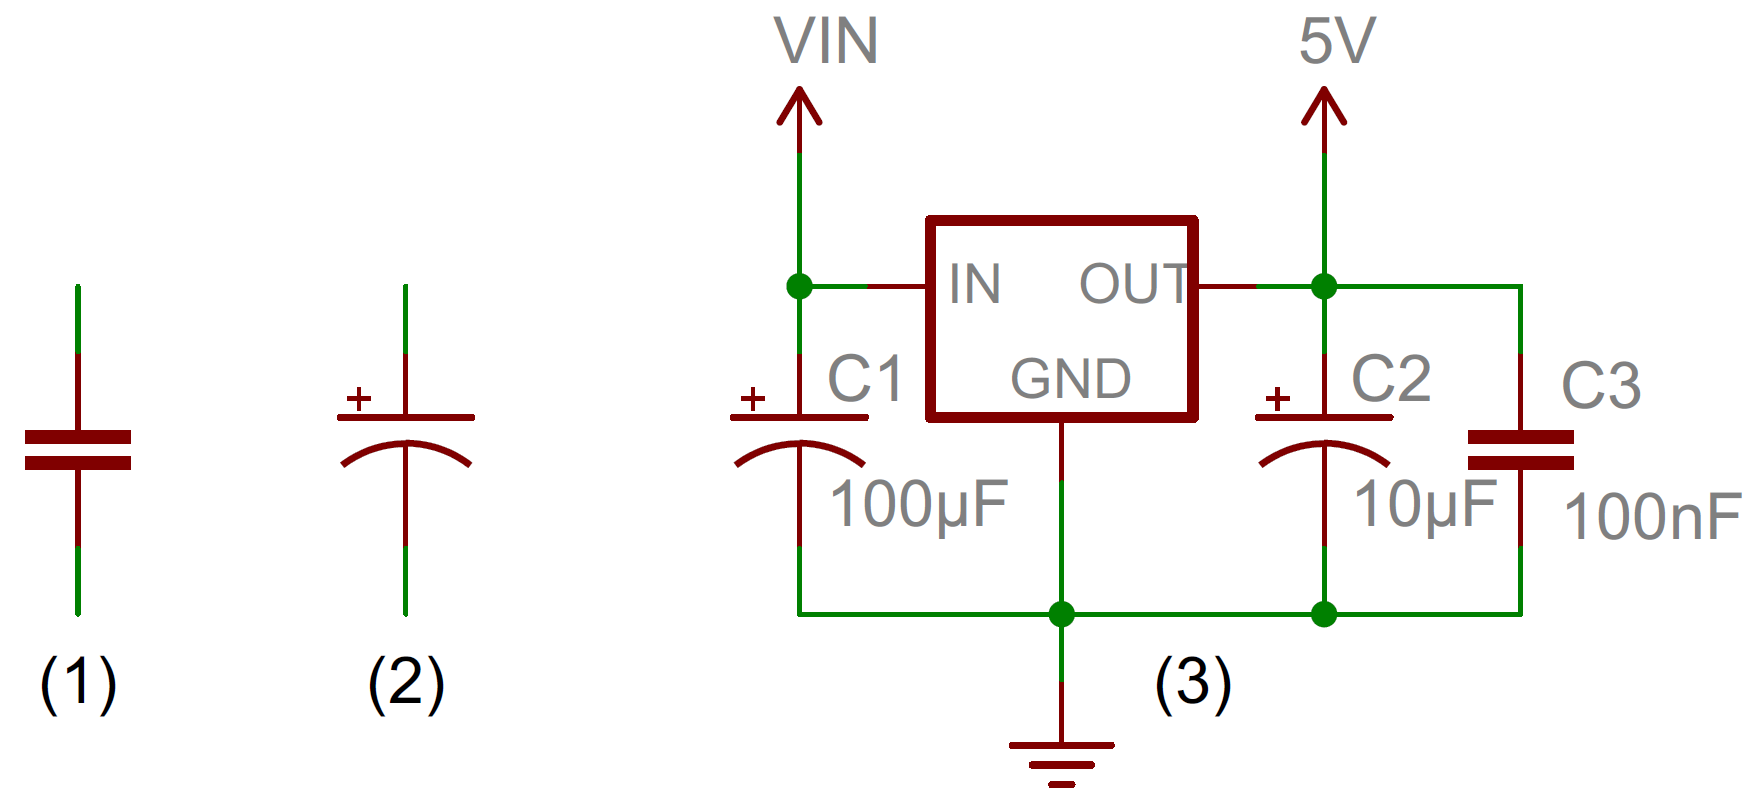 Capacitors Application Circuits Explained In Simple Words Homemade Circuit Capacitor Symbols